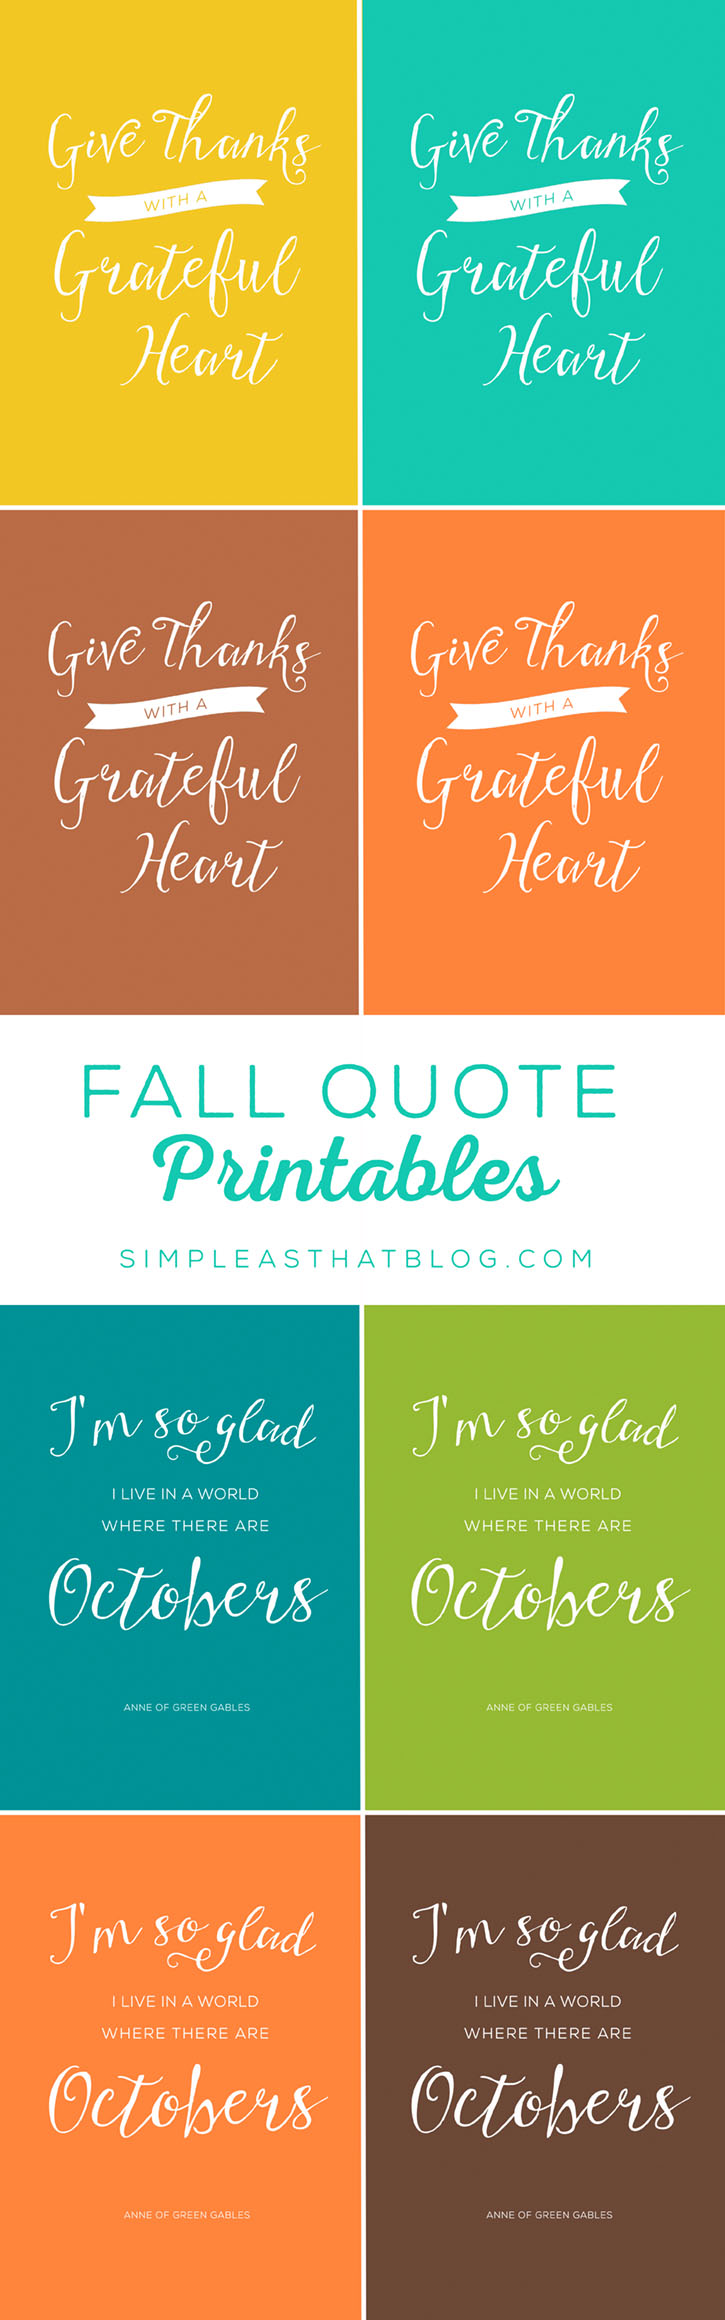 Free Printable Quotes for Fall